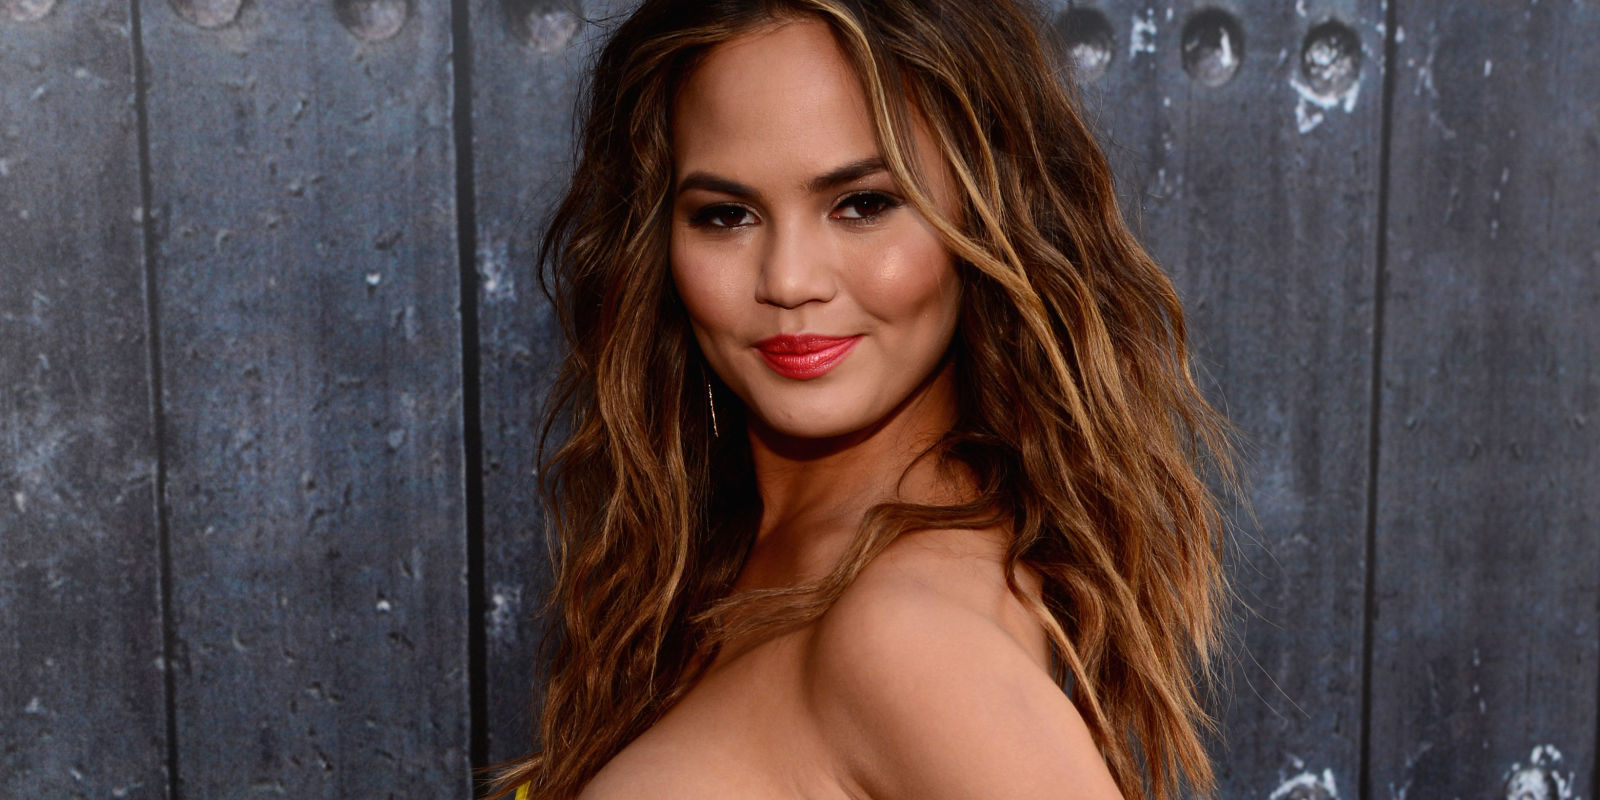 teigen bbw personals The 32-year-old model revealed that she's five months pregnant during a chat chrissy teigen reveals she's his wife when the couple started dating.